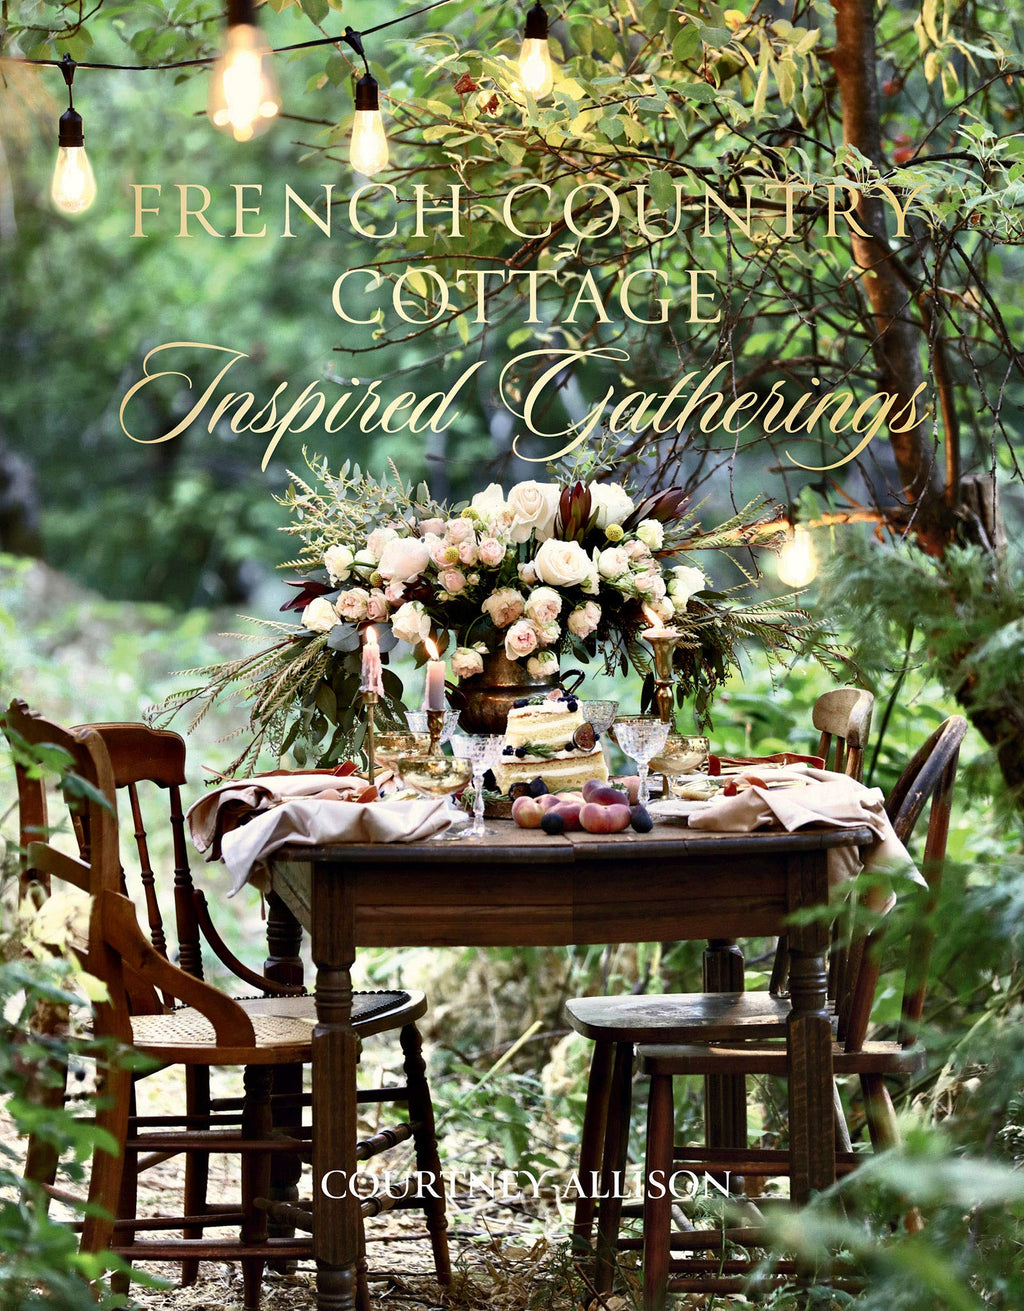 Signed Copy of French Country Cottage Inspired Gatherings